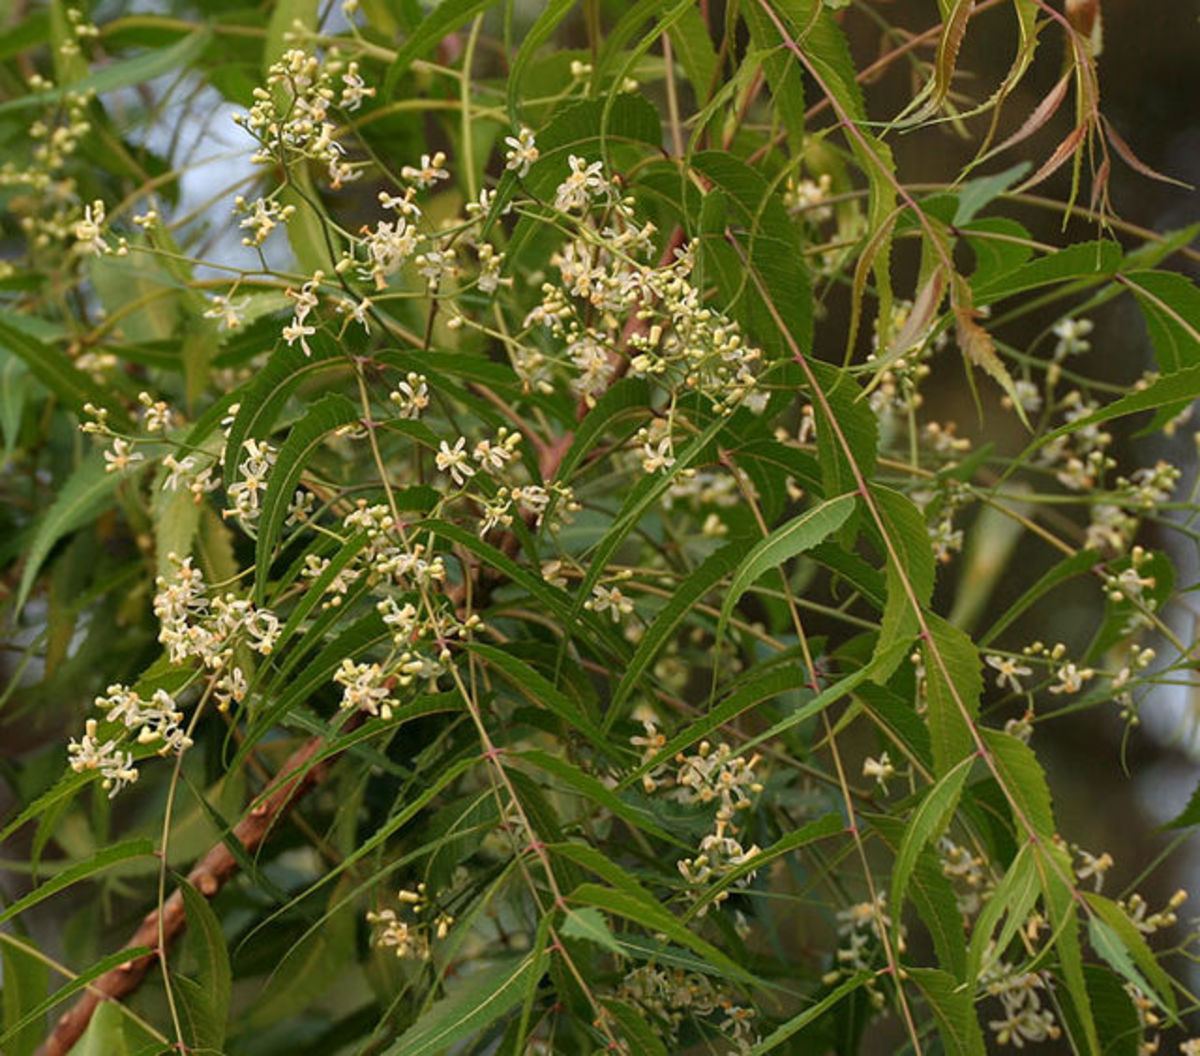 Neem leaves with small white flowers